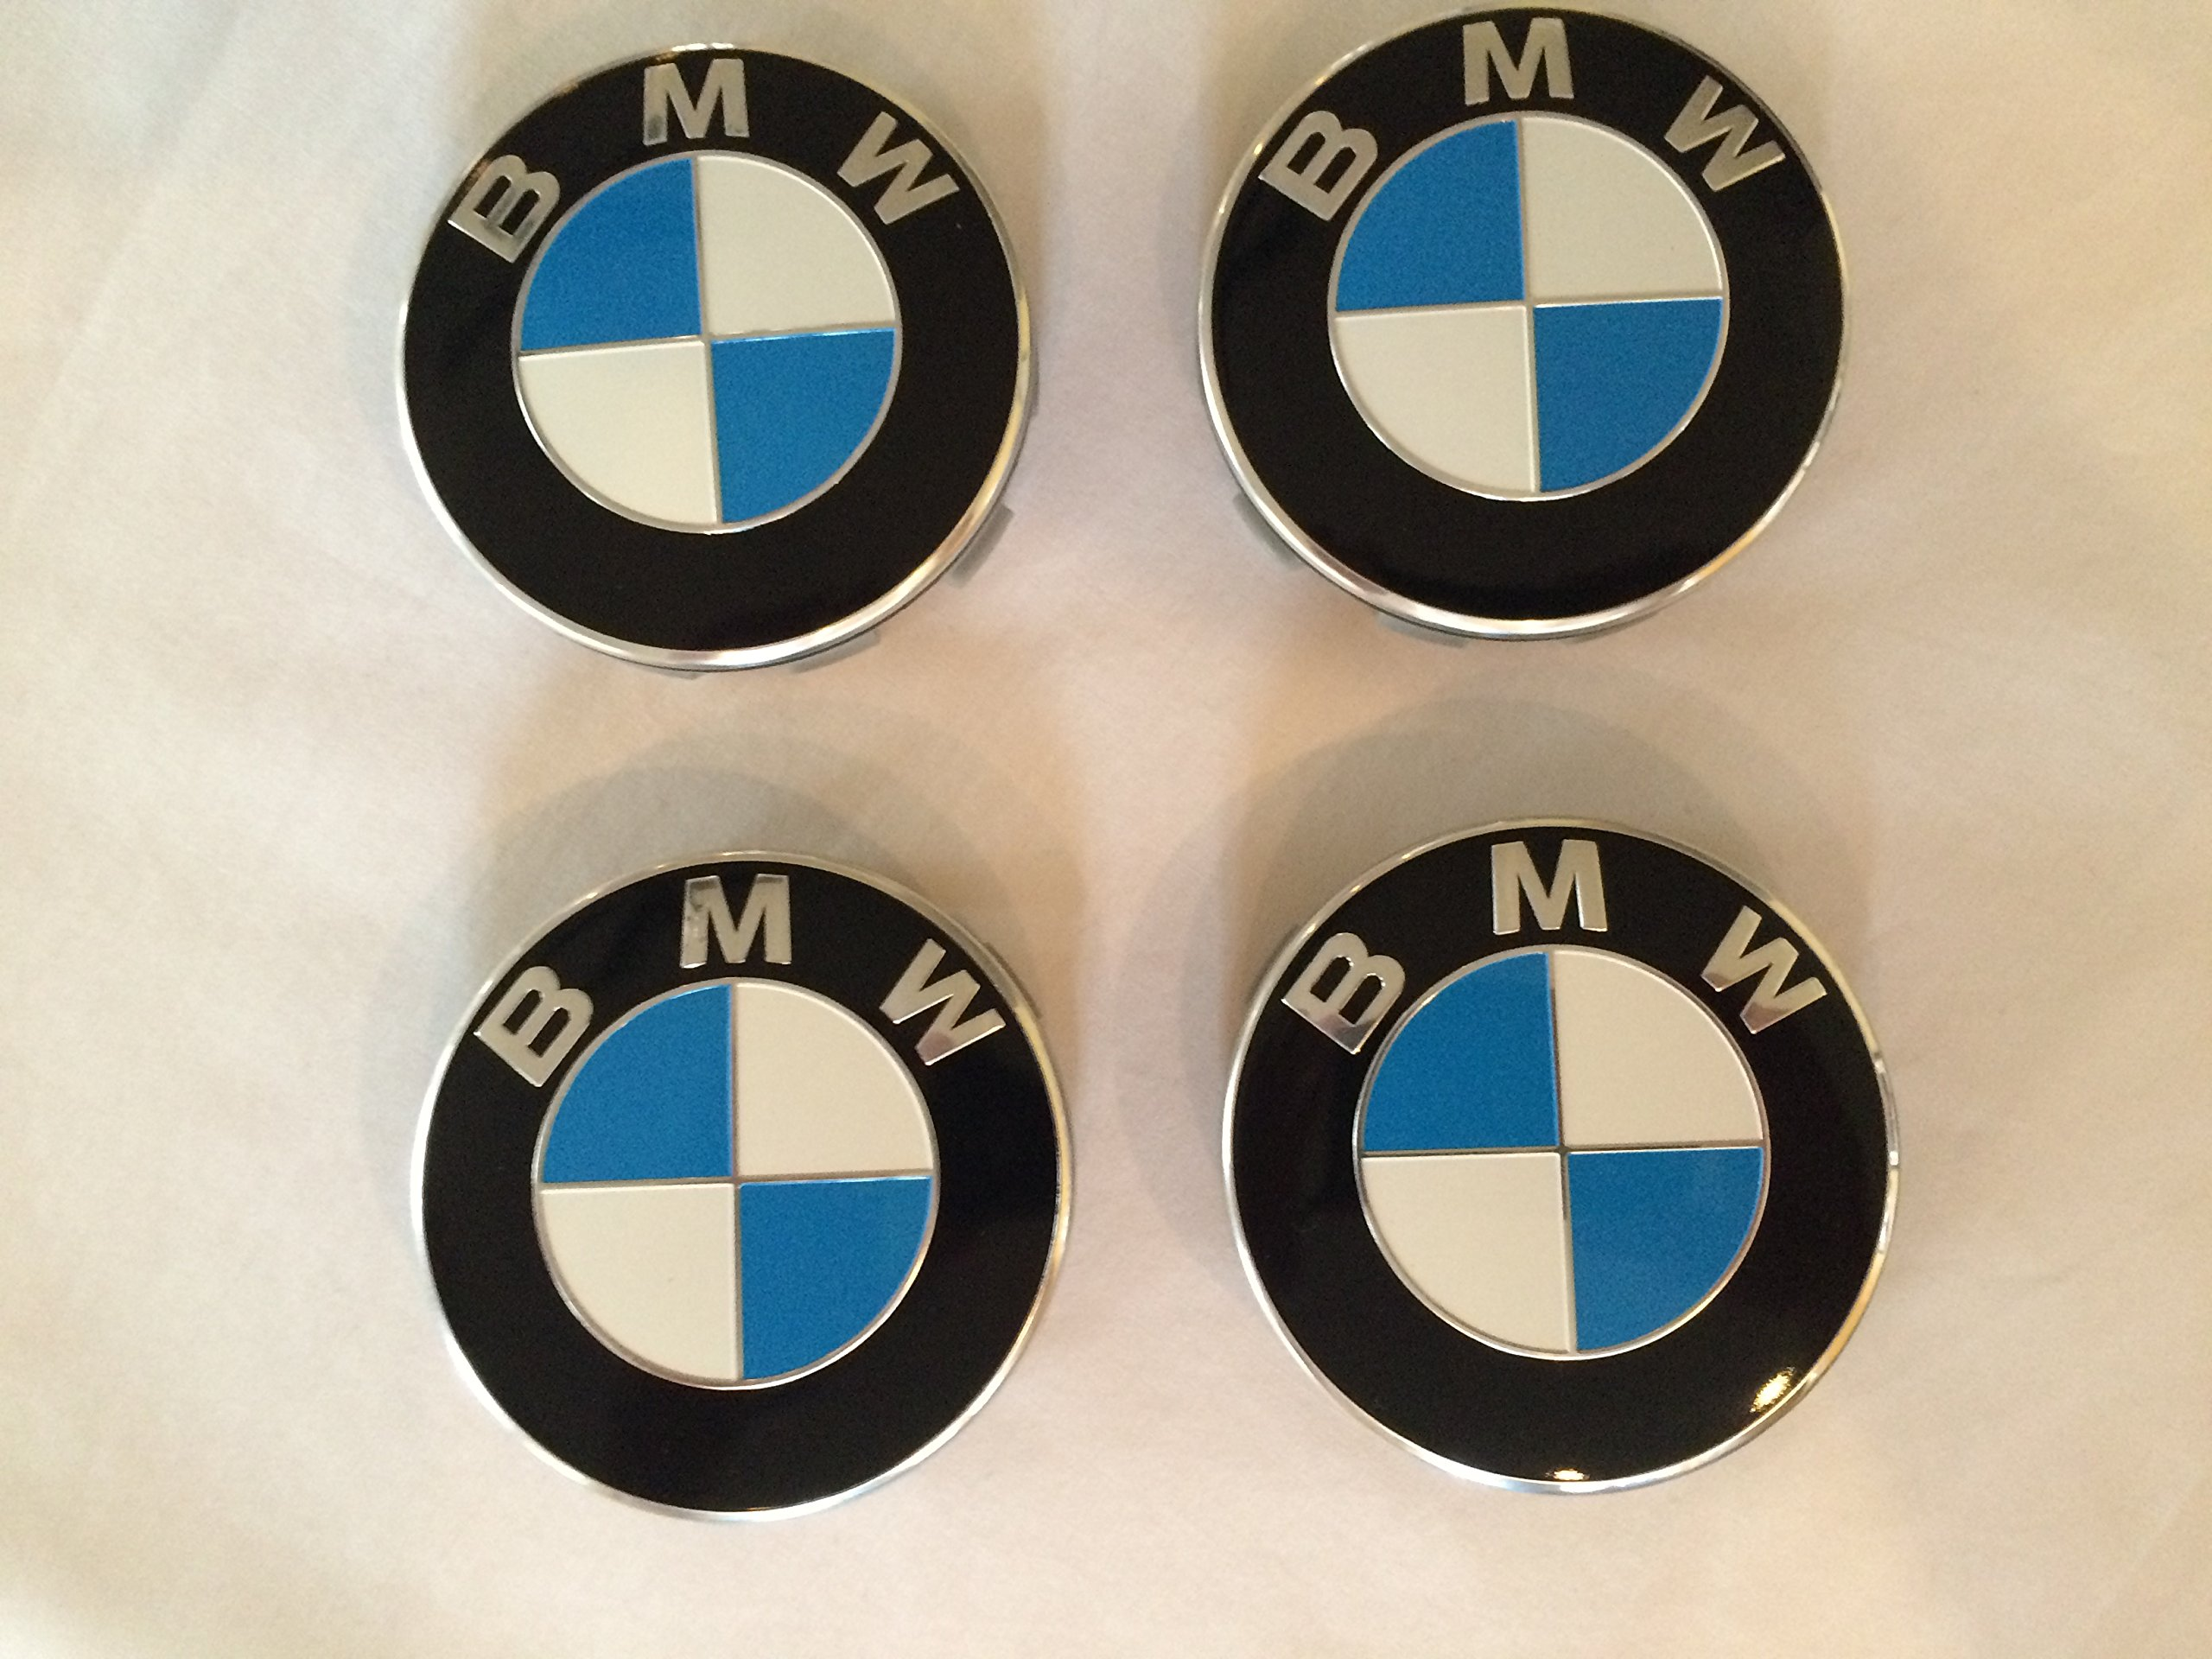 4 X BMW Blue Wheel Center Caps, Badge, Emblem 68mm By SH